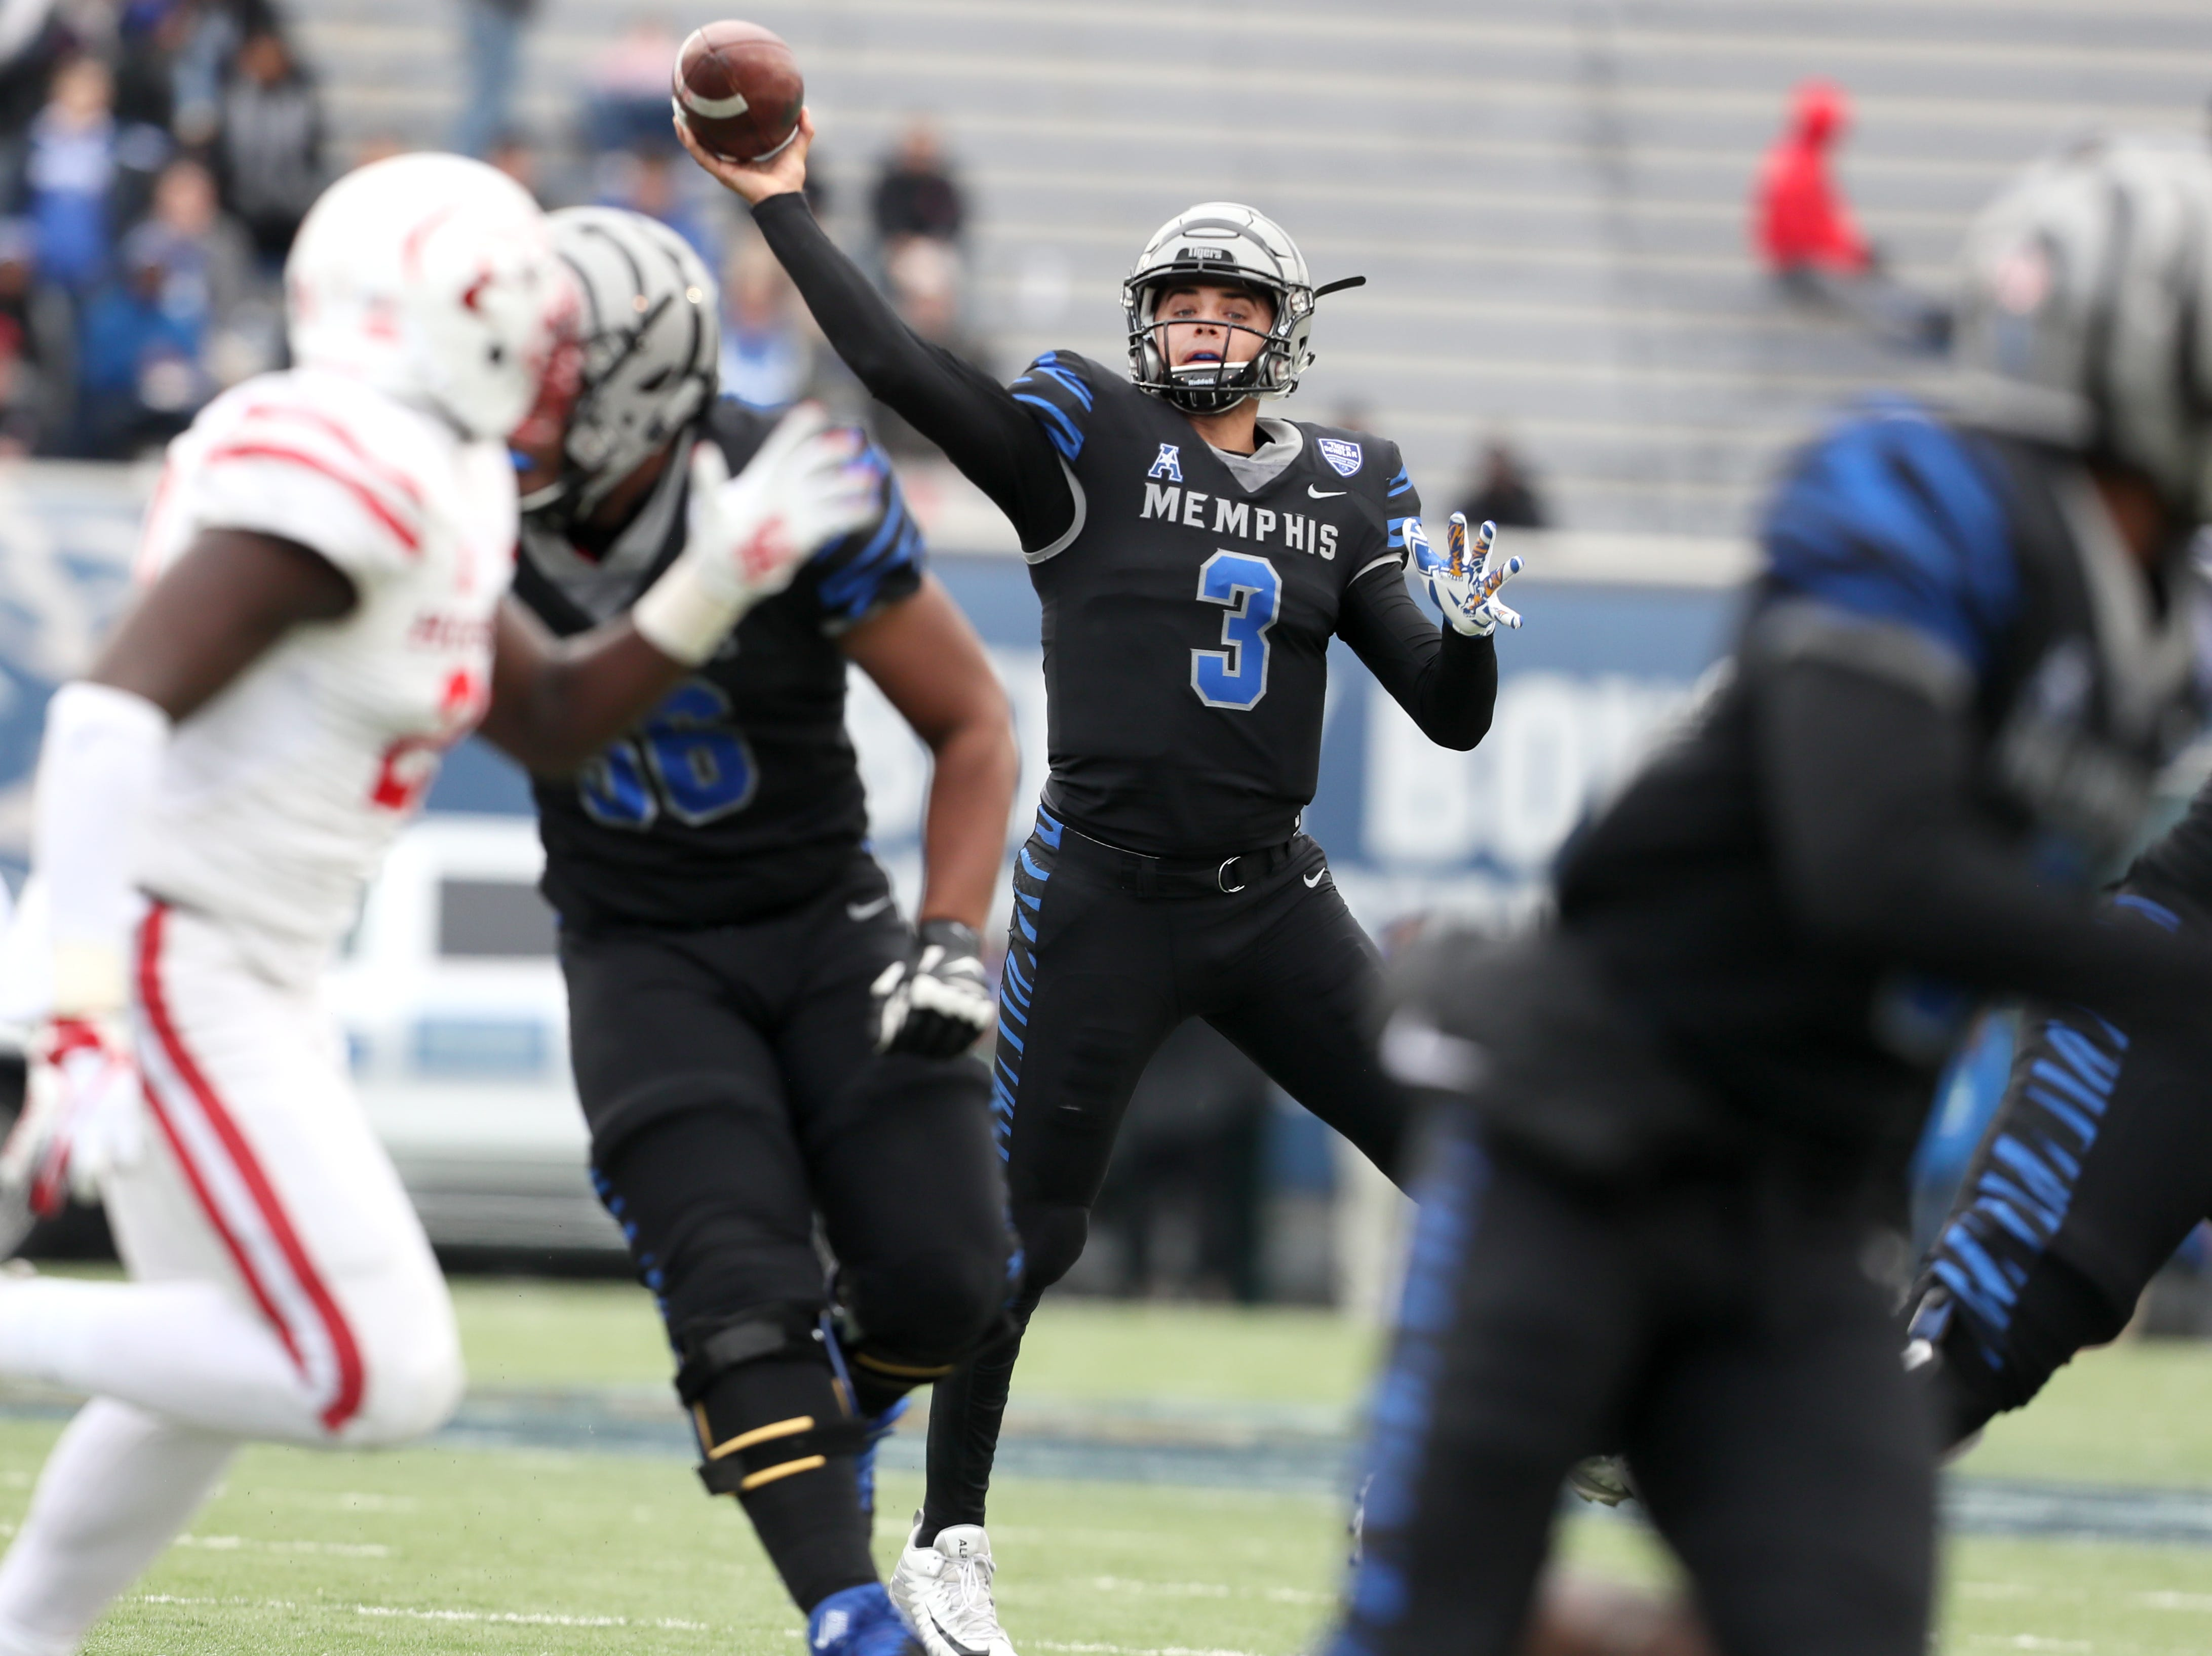 Memphis' Brady White throws the ball against Houston Cougars as the Tigers win the AAC West title 52-31 at the Liberty Bowl on Friday, Nov. 23, 2018.